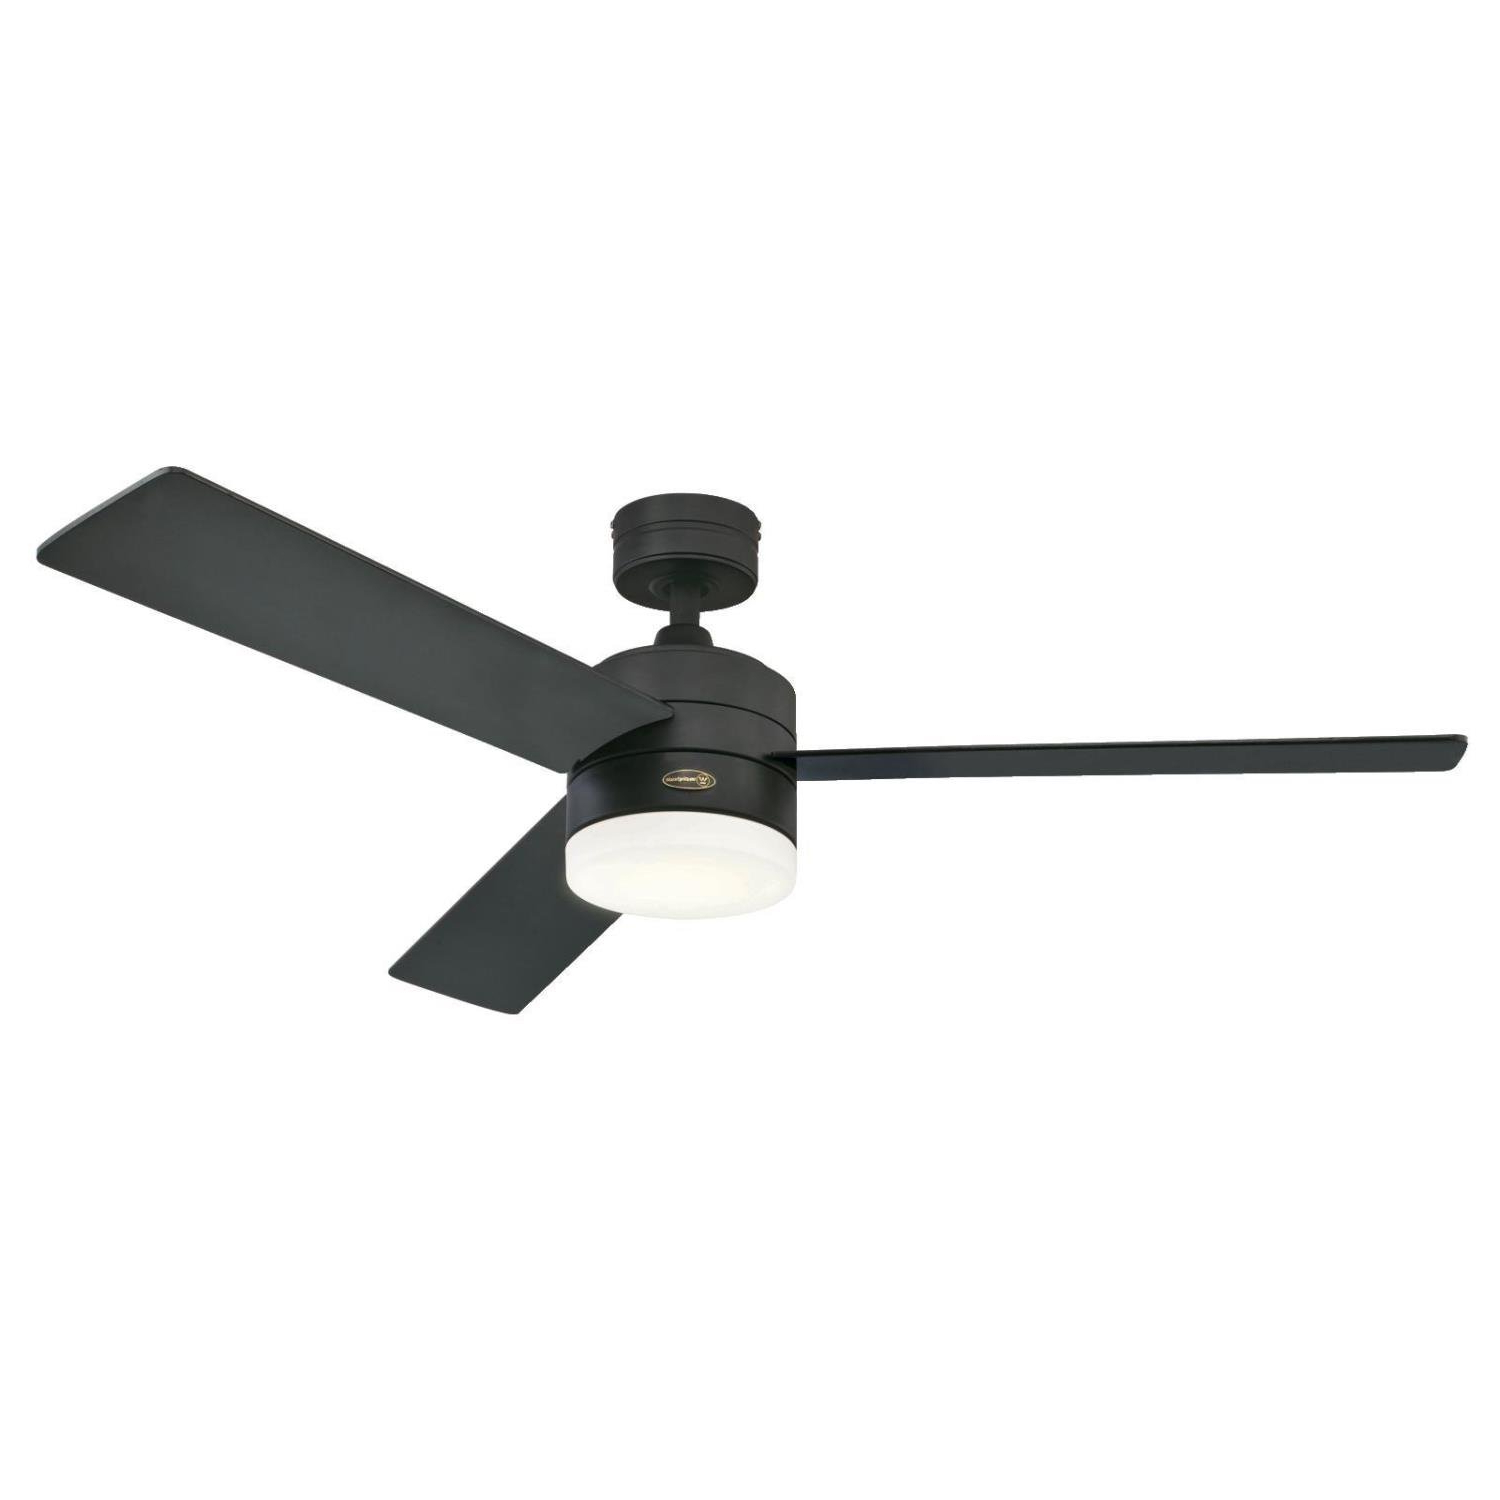 "52"" Luray 3 Blade Led Ceiling Fan With Remote, Light Kit With Favorite Sentinel 3 Blade Led Ceiling Fans With Remote (View 14 of 20)"